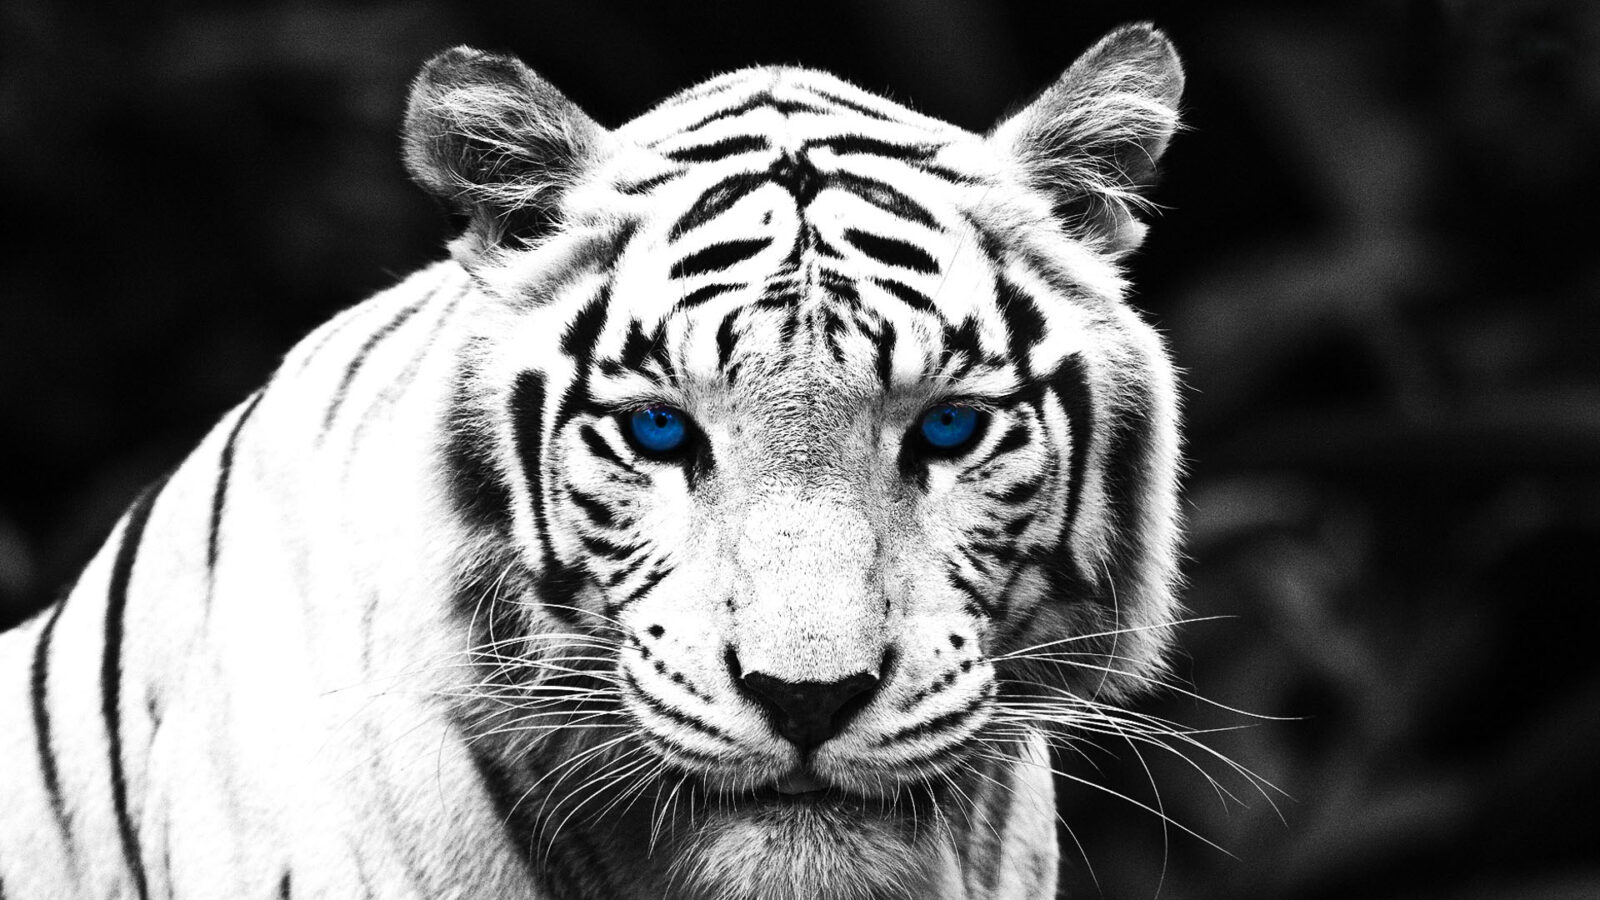 Angry White Tiger Wallpaper Hd 1080p | Galleryimage.co